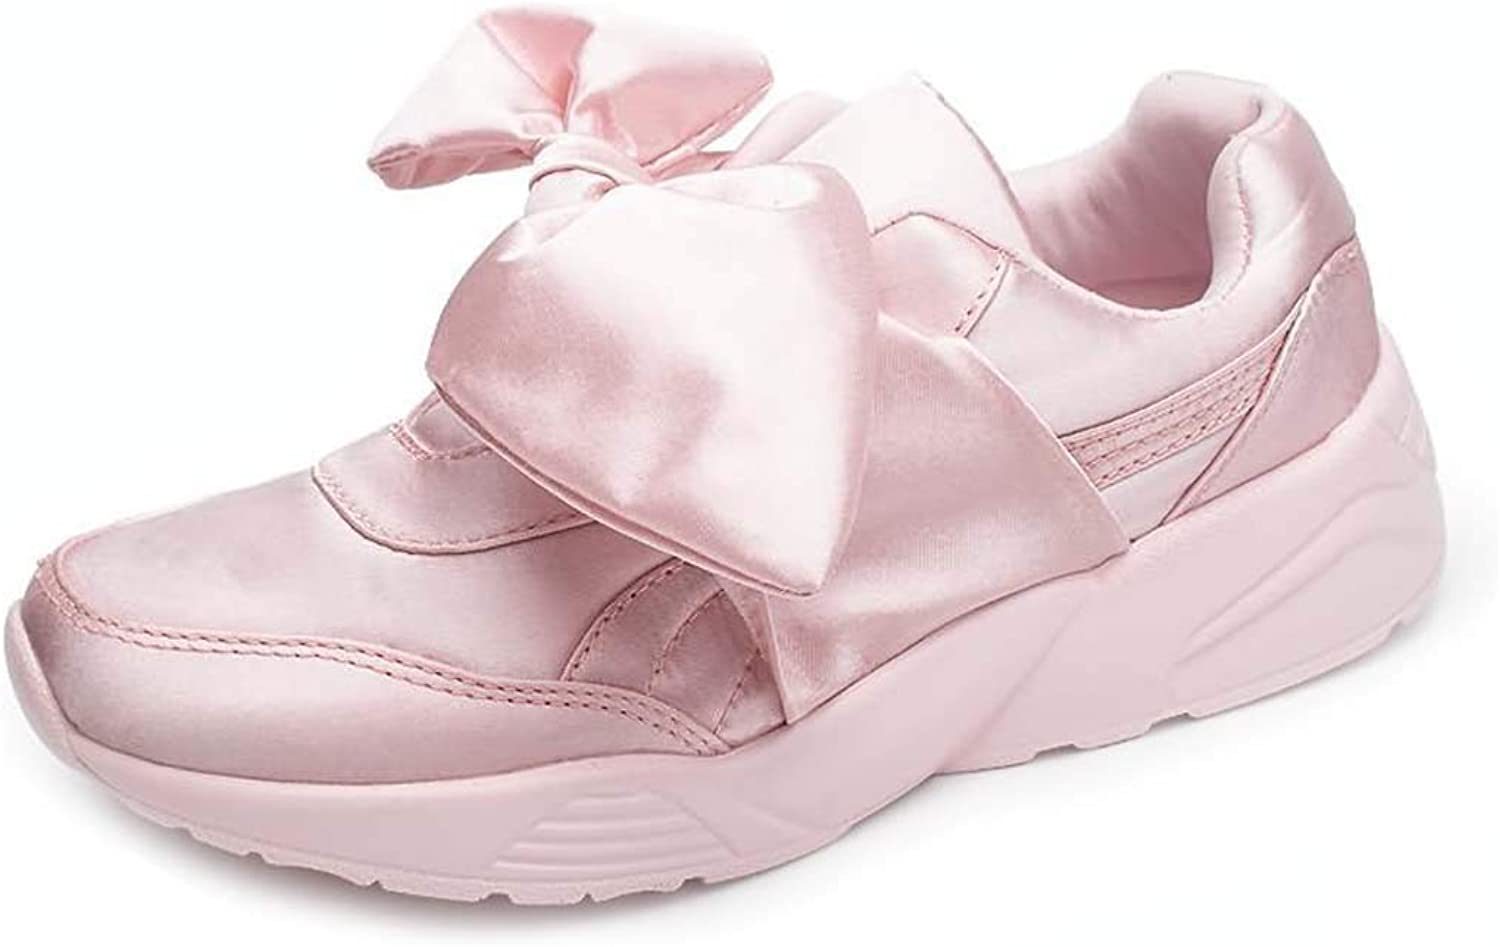 Women's Casual Running shoes Jogging Fitness Sports shoes Silk LowCut Flowers Sneakers